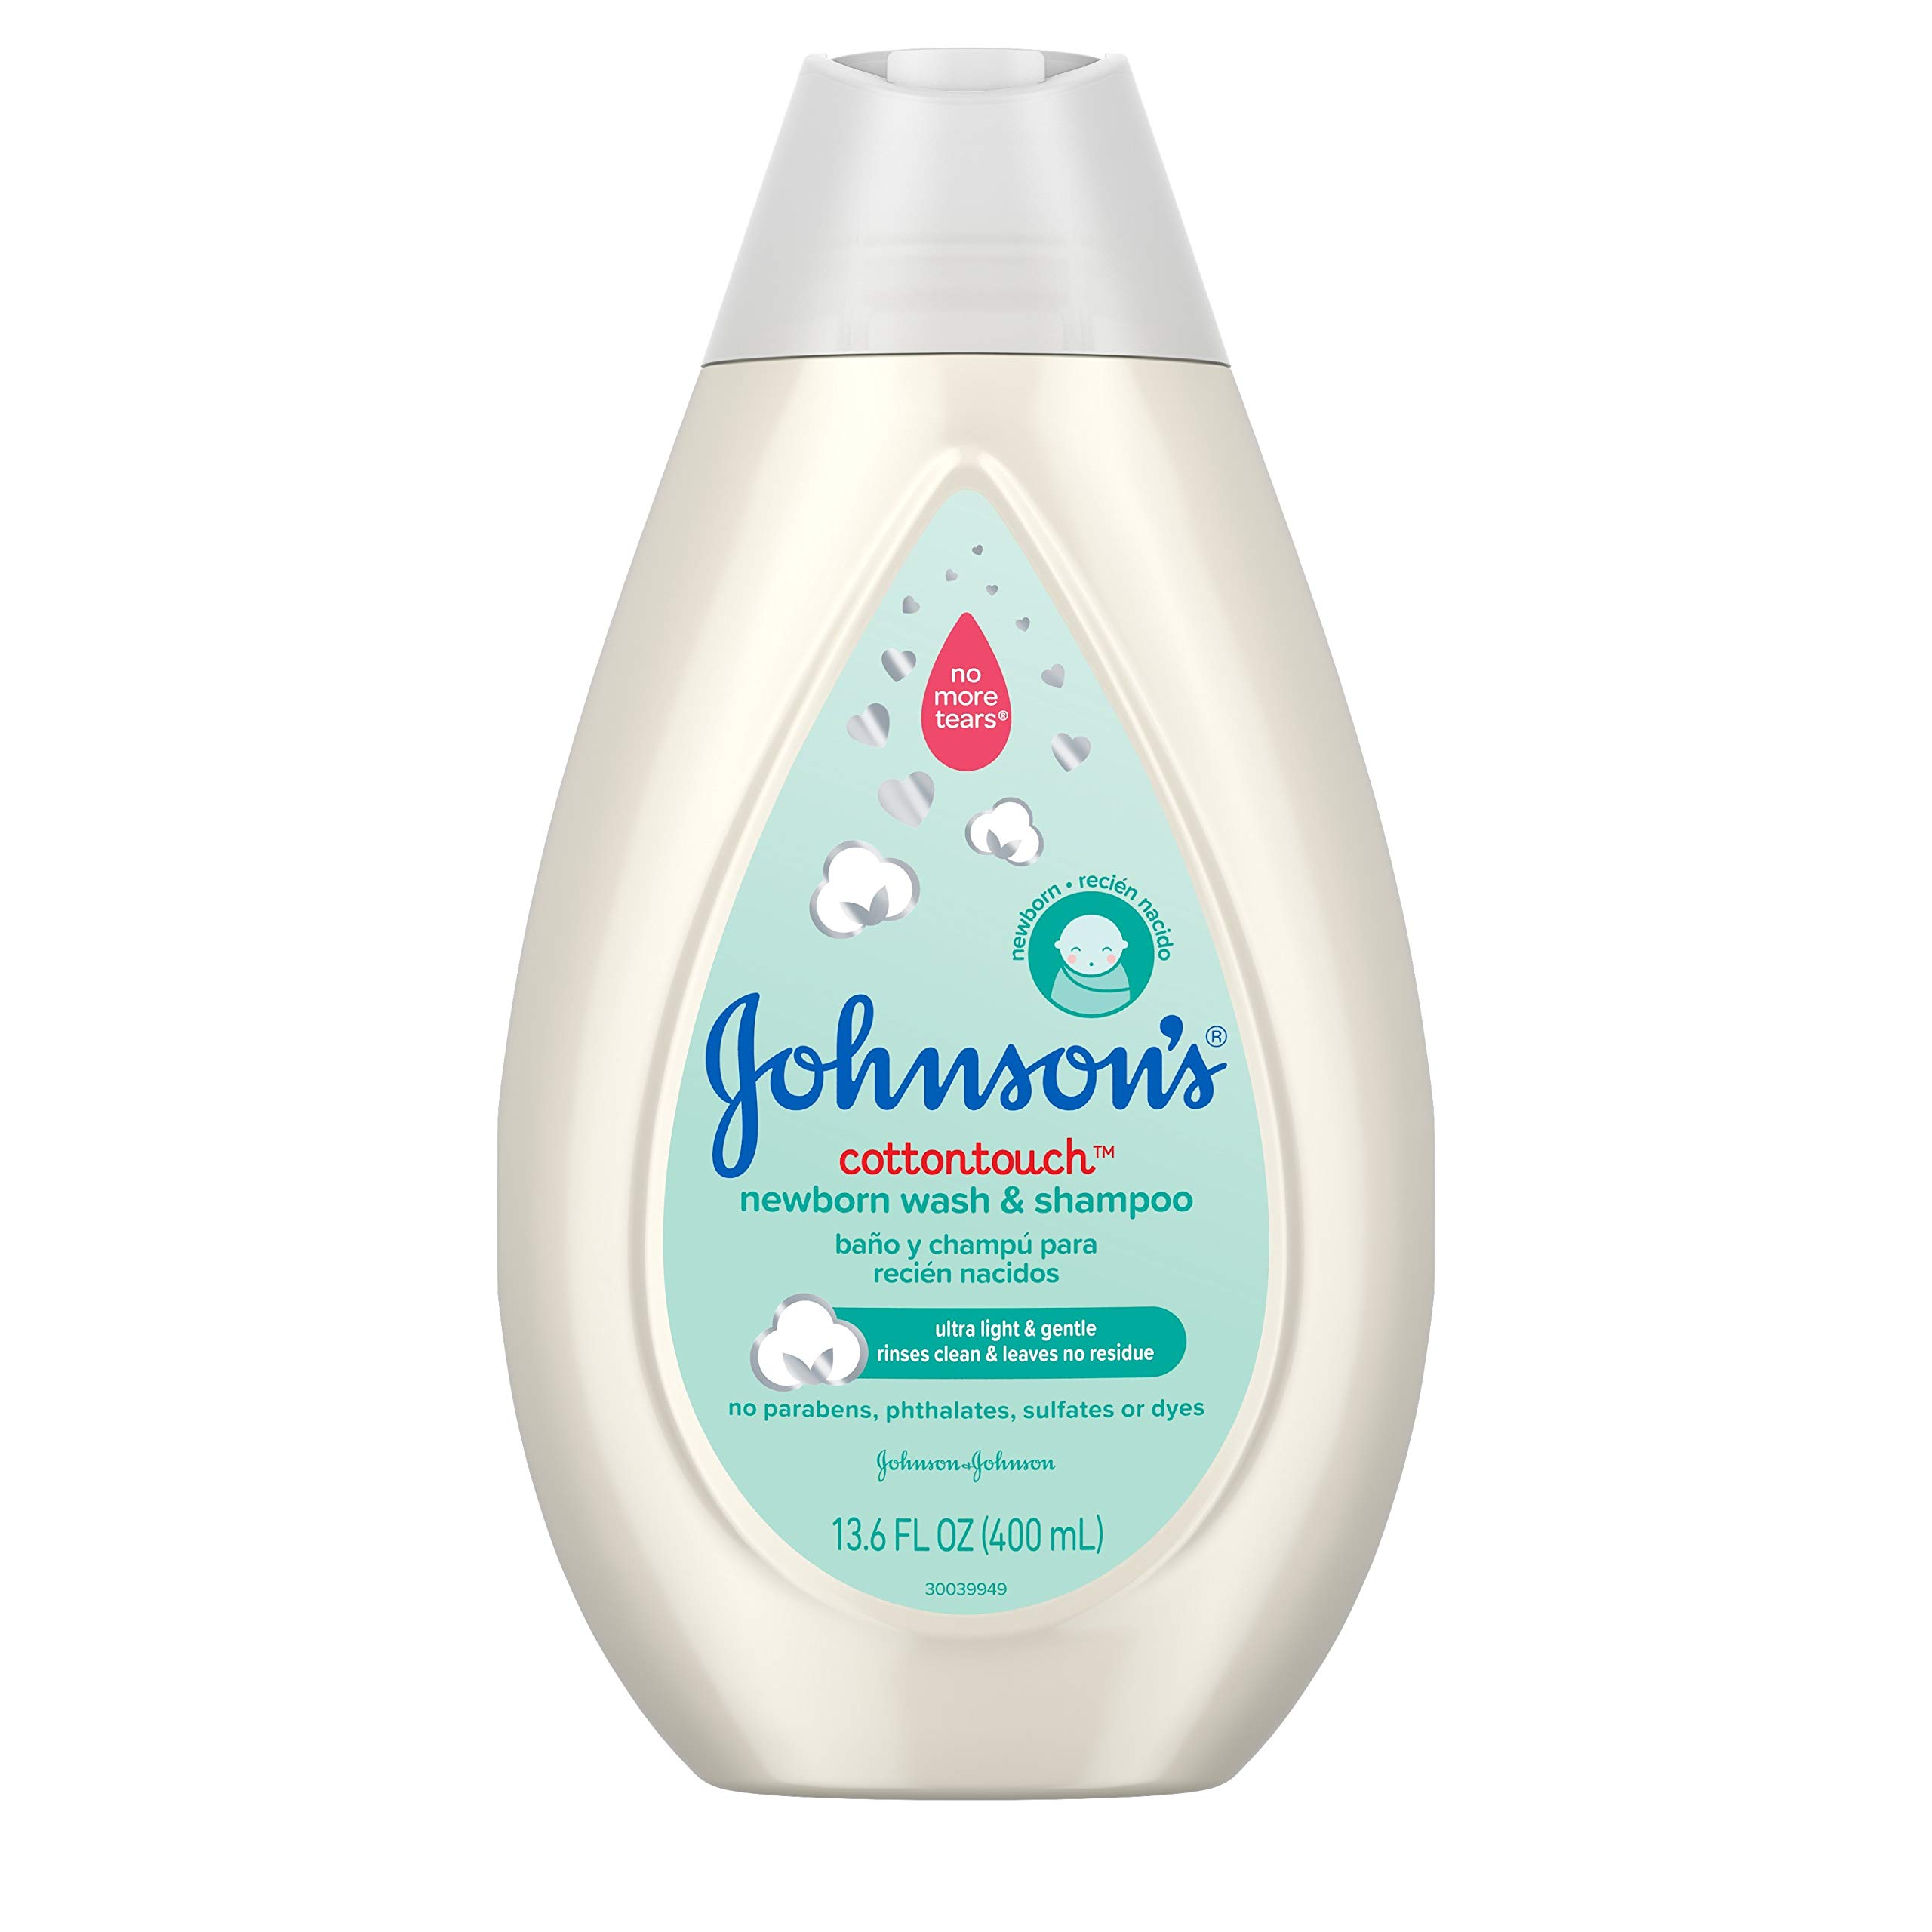 Johnson's CottonTouch Newborn Baby Wash & Shampoo with No More Tears, Sulfate-, Paraben- Free for Sensitive Skin, Made with Real Cotton, Gently Washes Away Dirt & Germs, 13.6 fl. oz